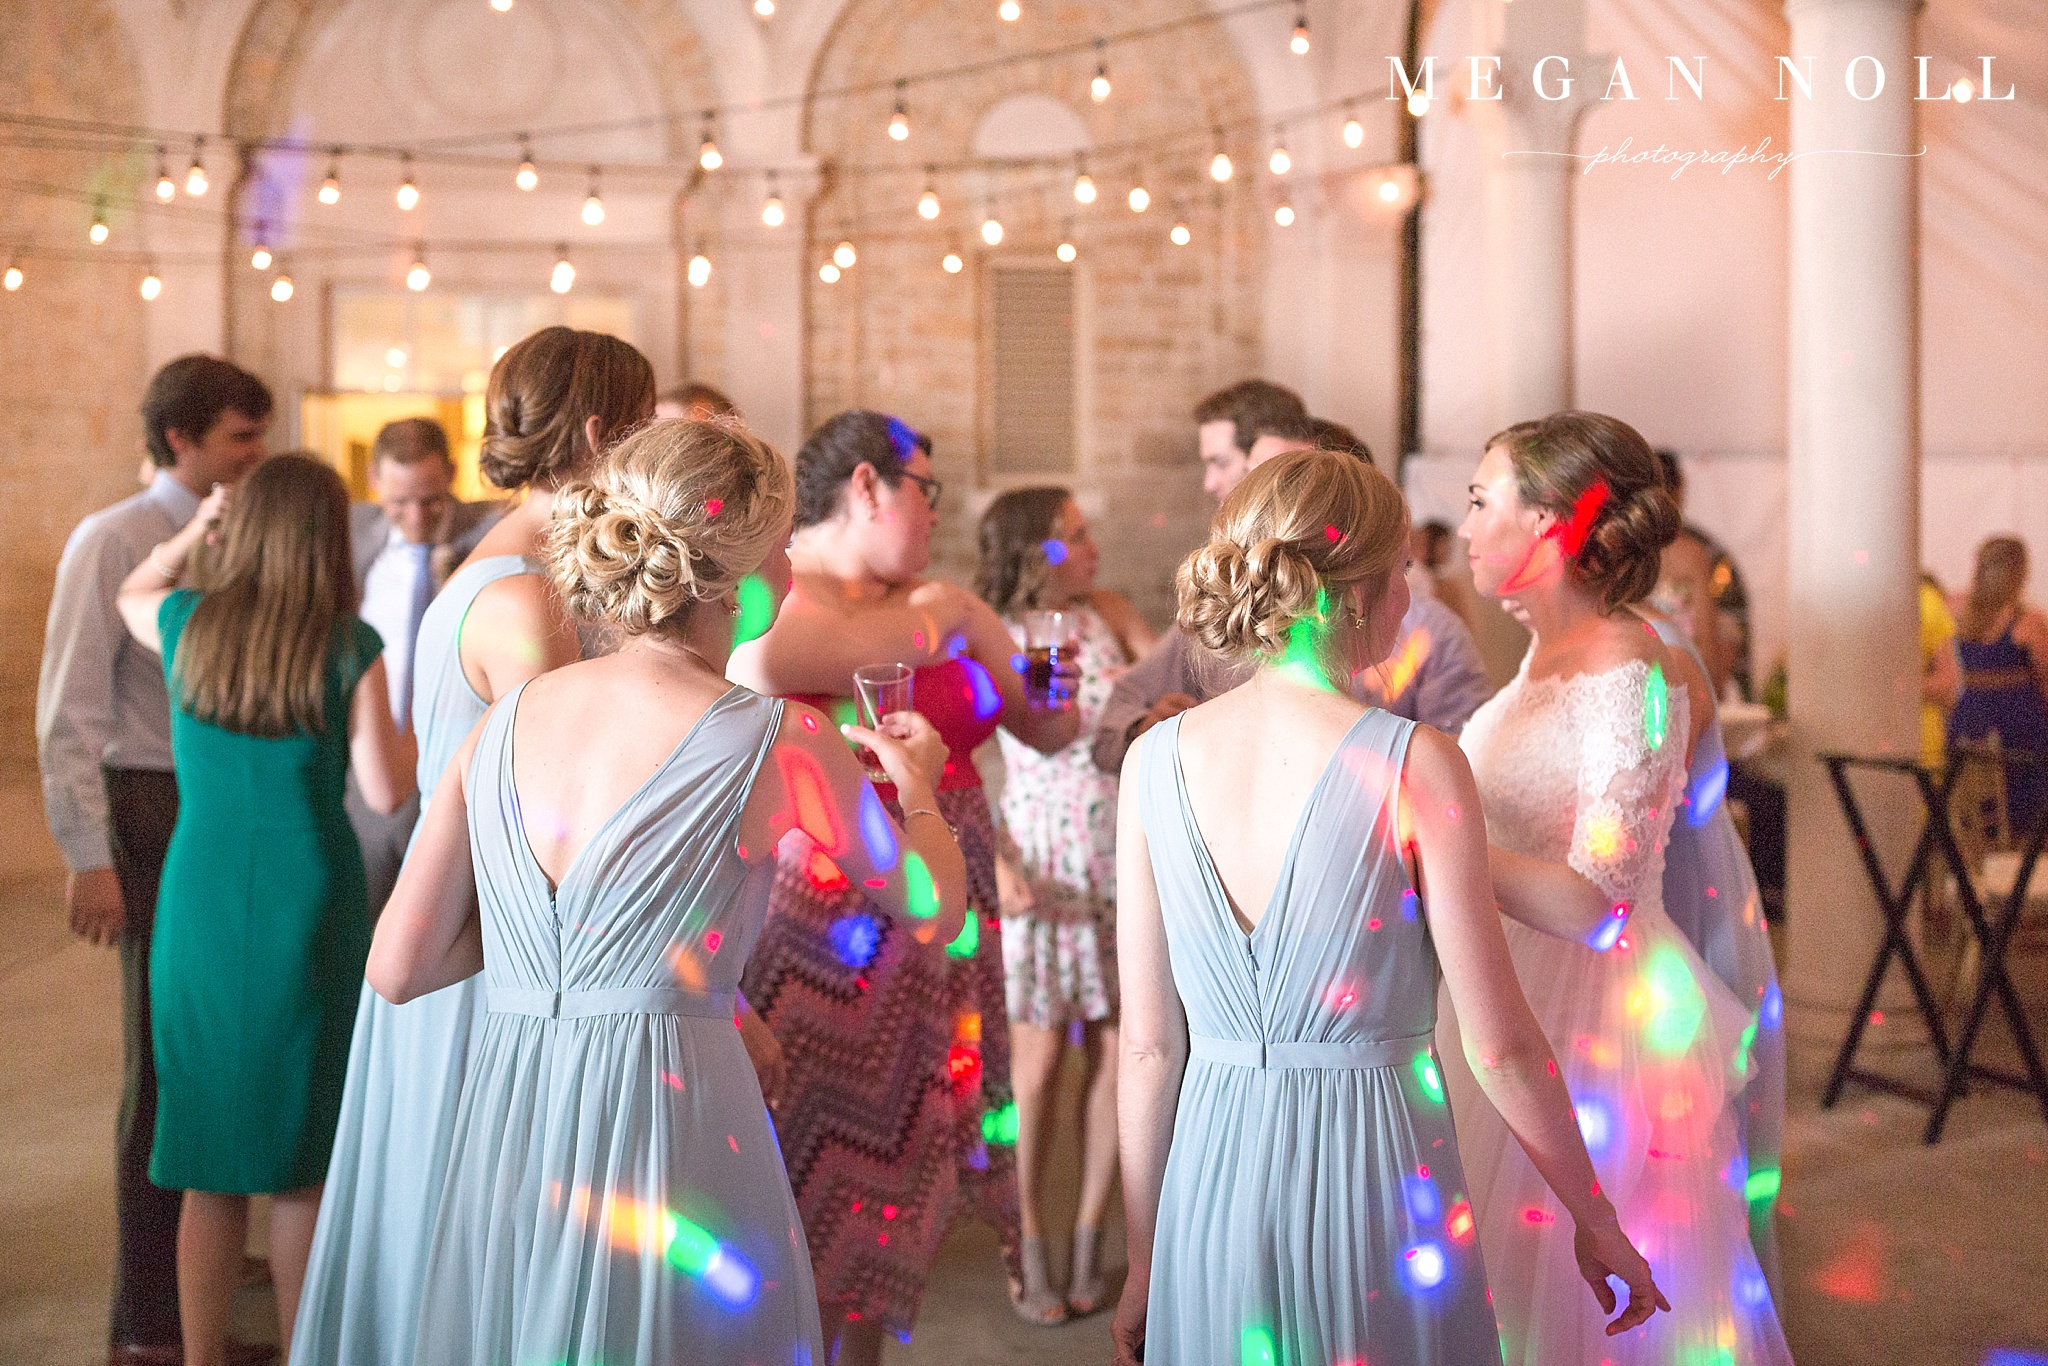 Hey Mr. DJ, An open letter from wedding photographers, laser lights, DJ lighting, tips for DJ's